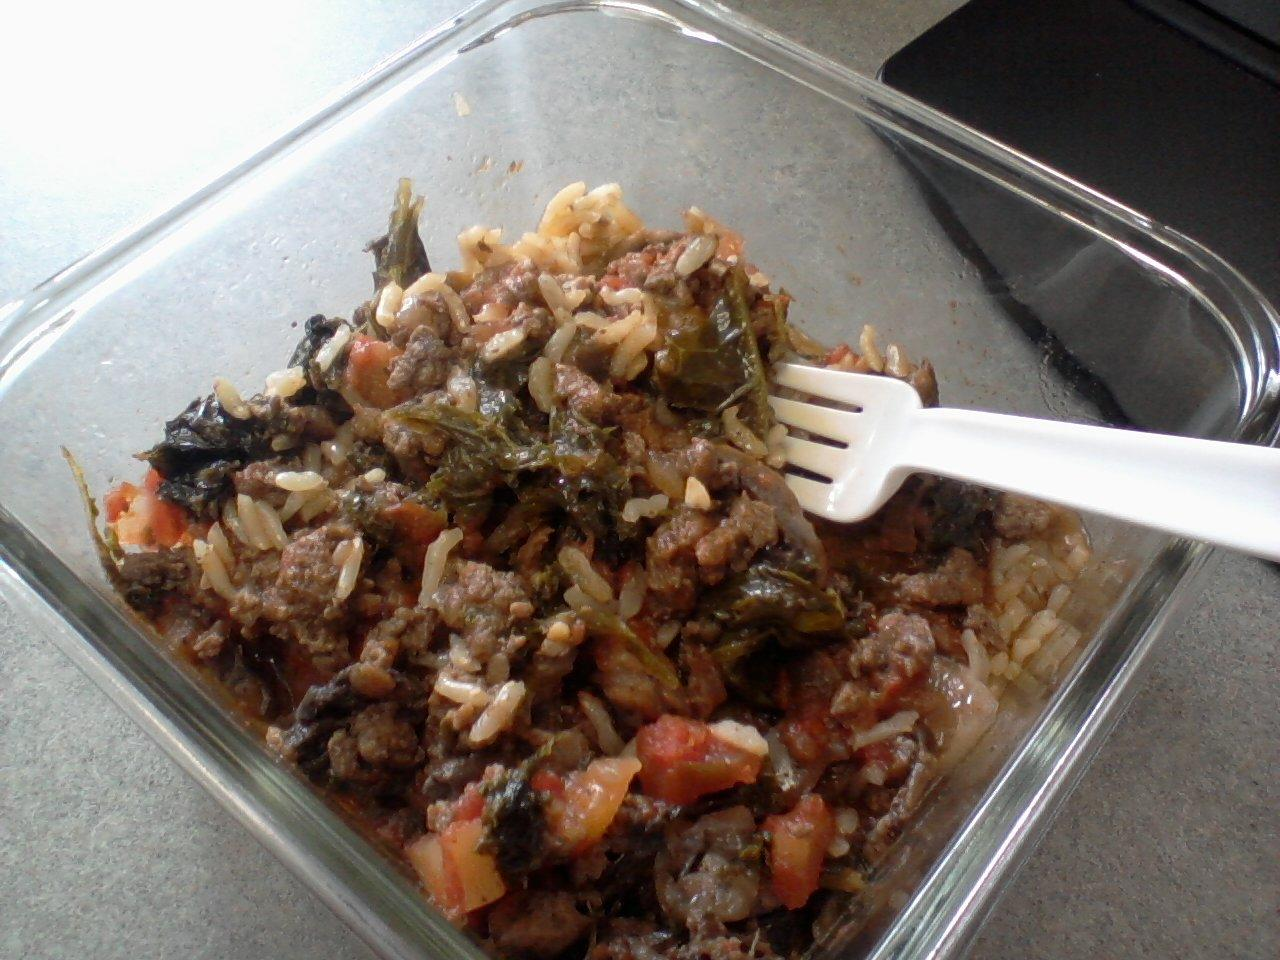 ... Beef, Kale, and Caramelized Onions with Victoria Gourmet Seasoning